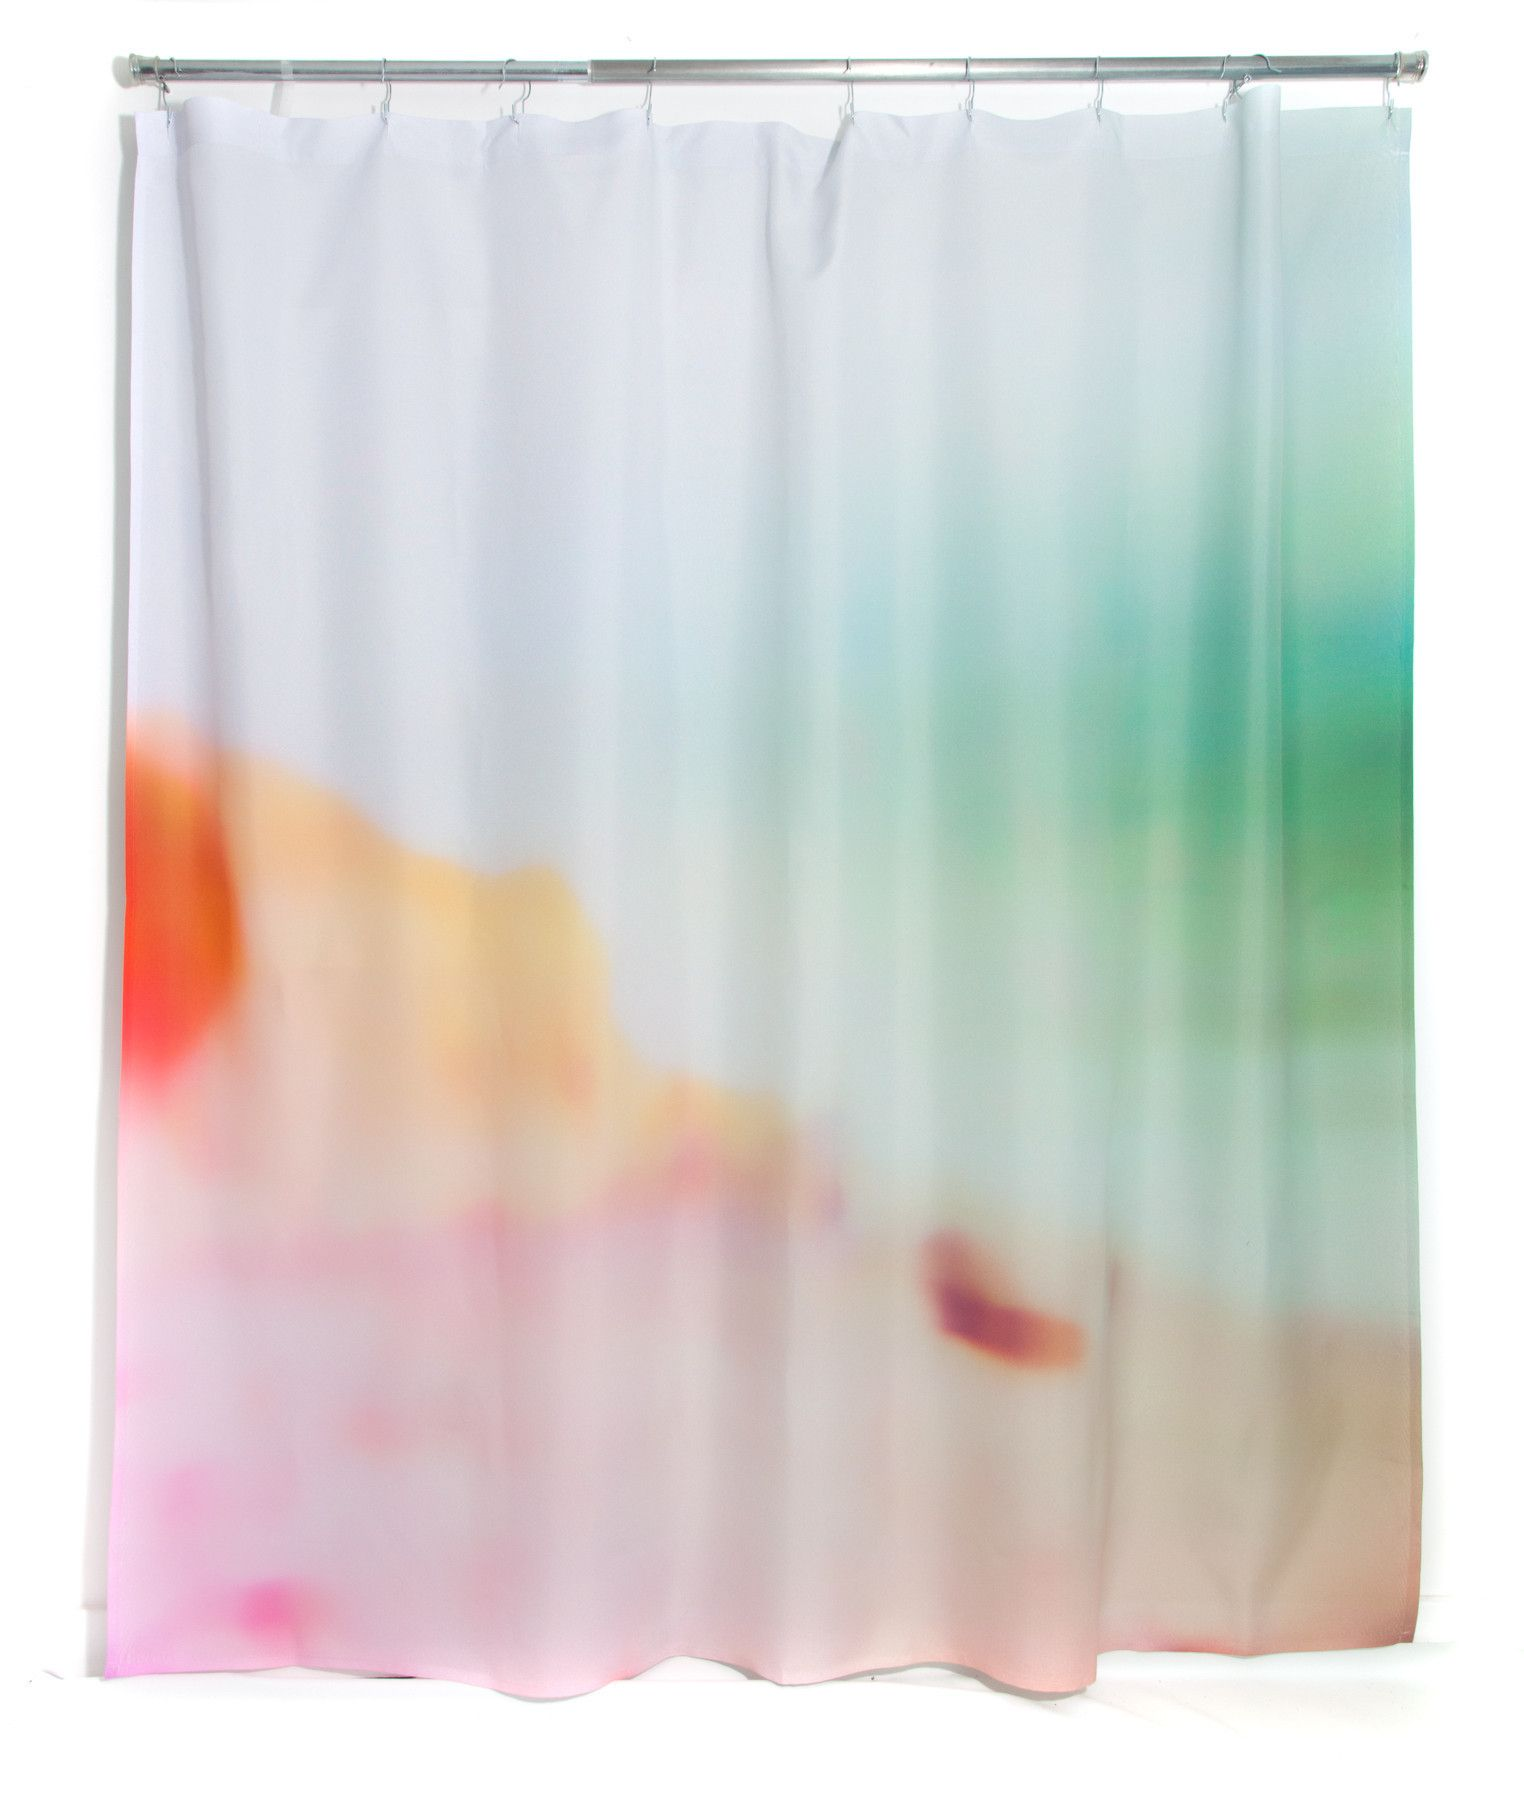 Desert Sun Shower Curtain In 2020 Cool Shower Curtains Colorful Shower Curtain Curtains